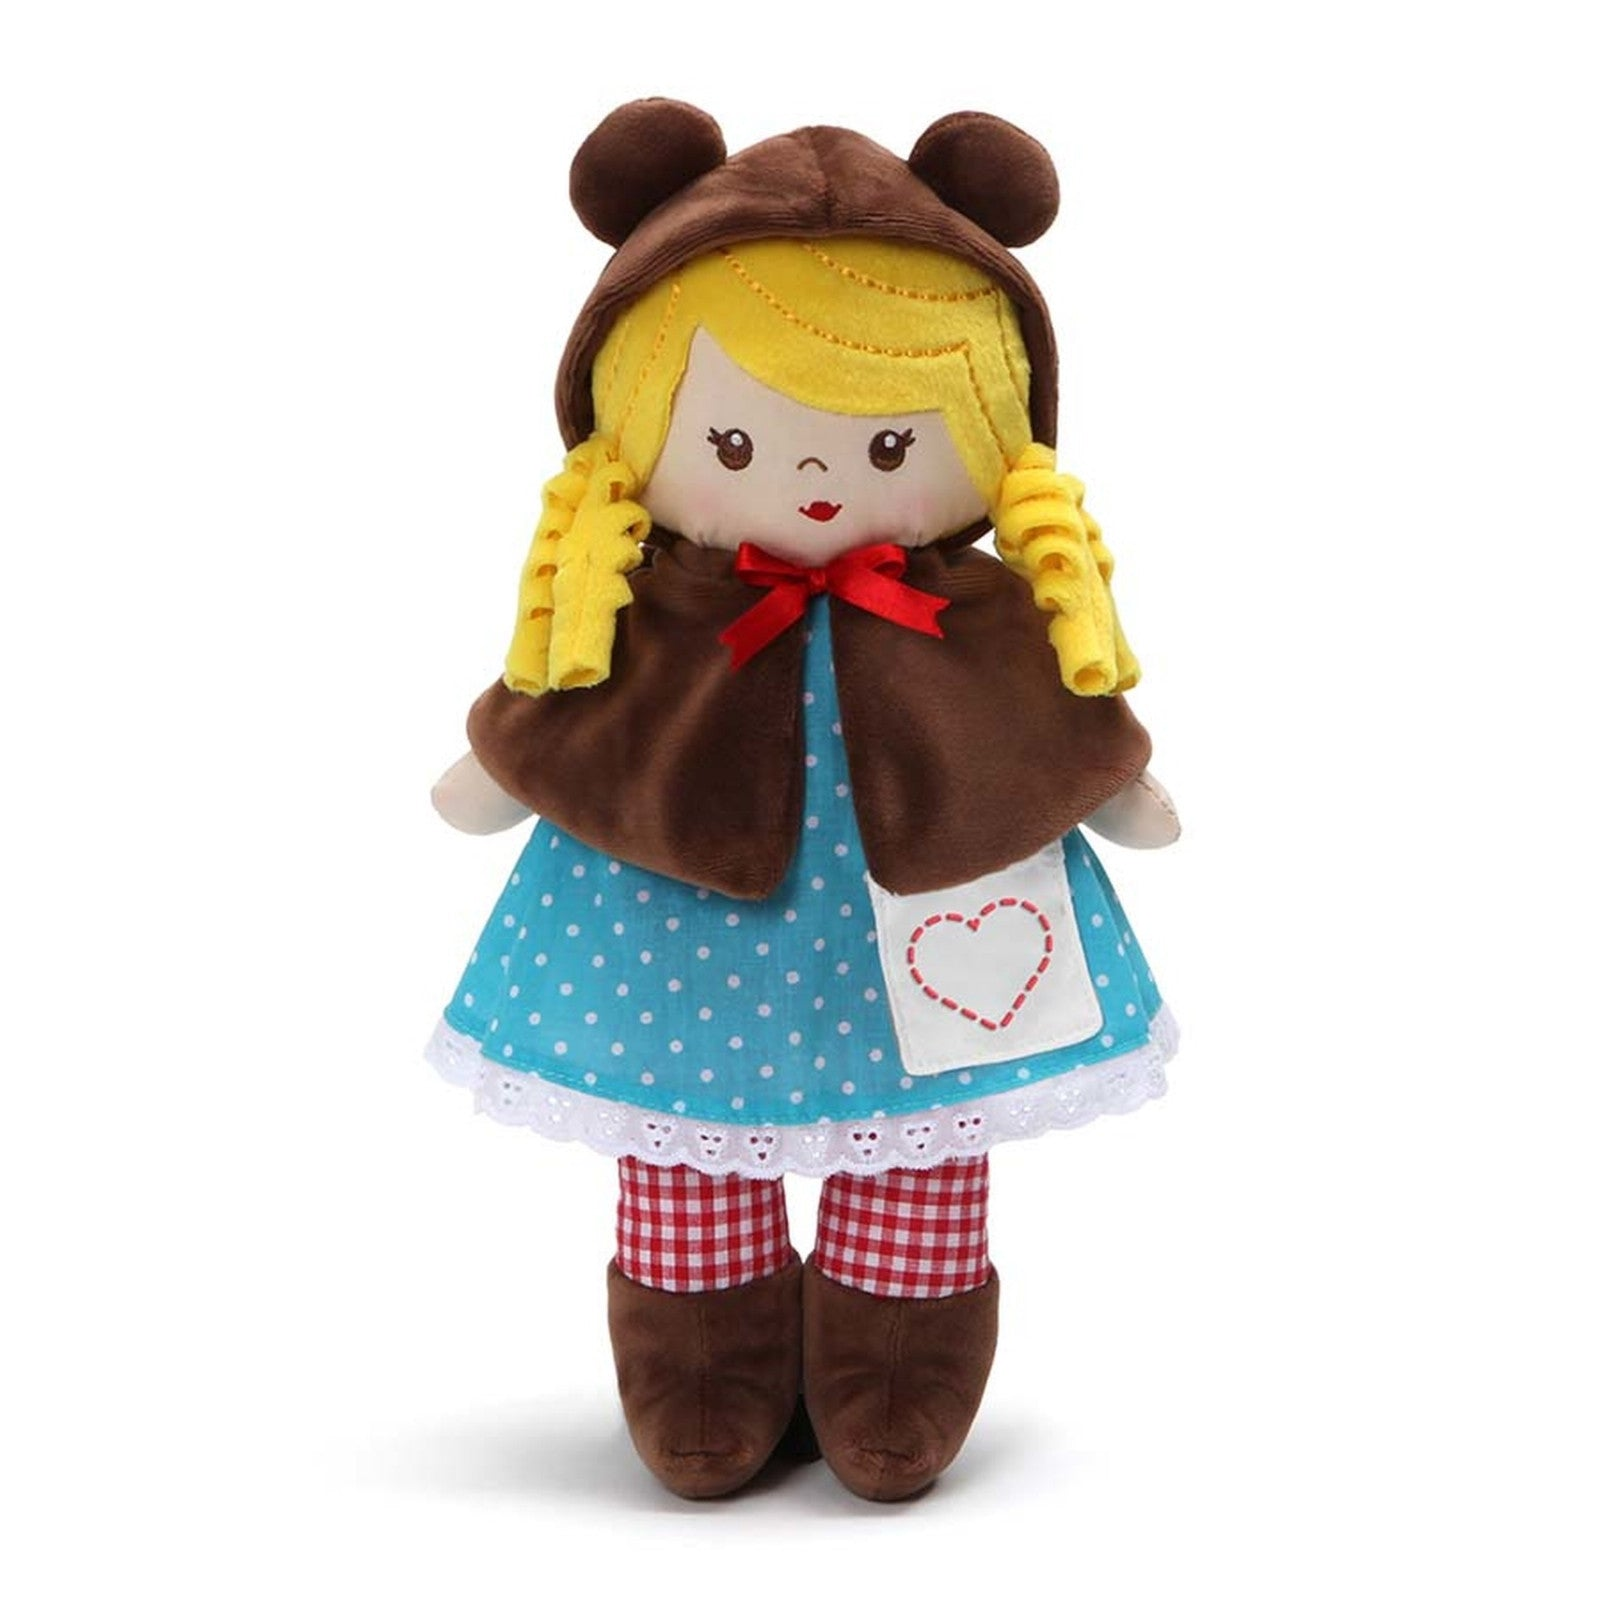 Gund - Goldie Doll - 13""